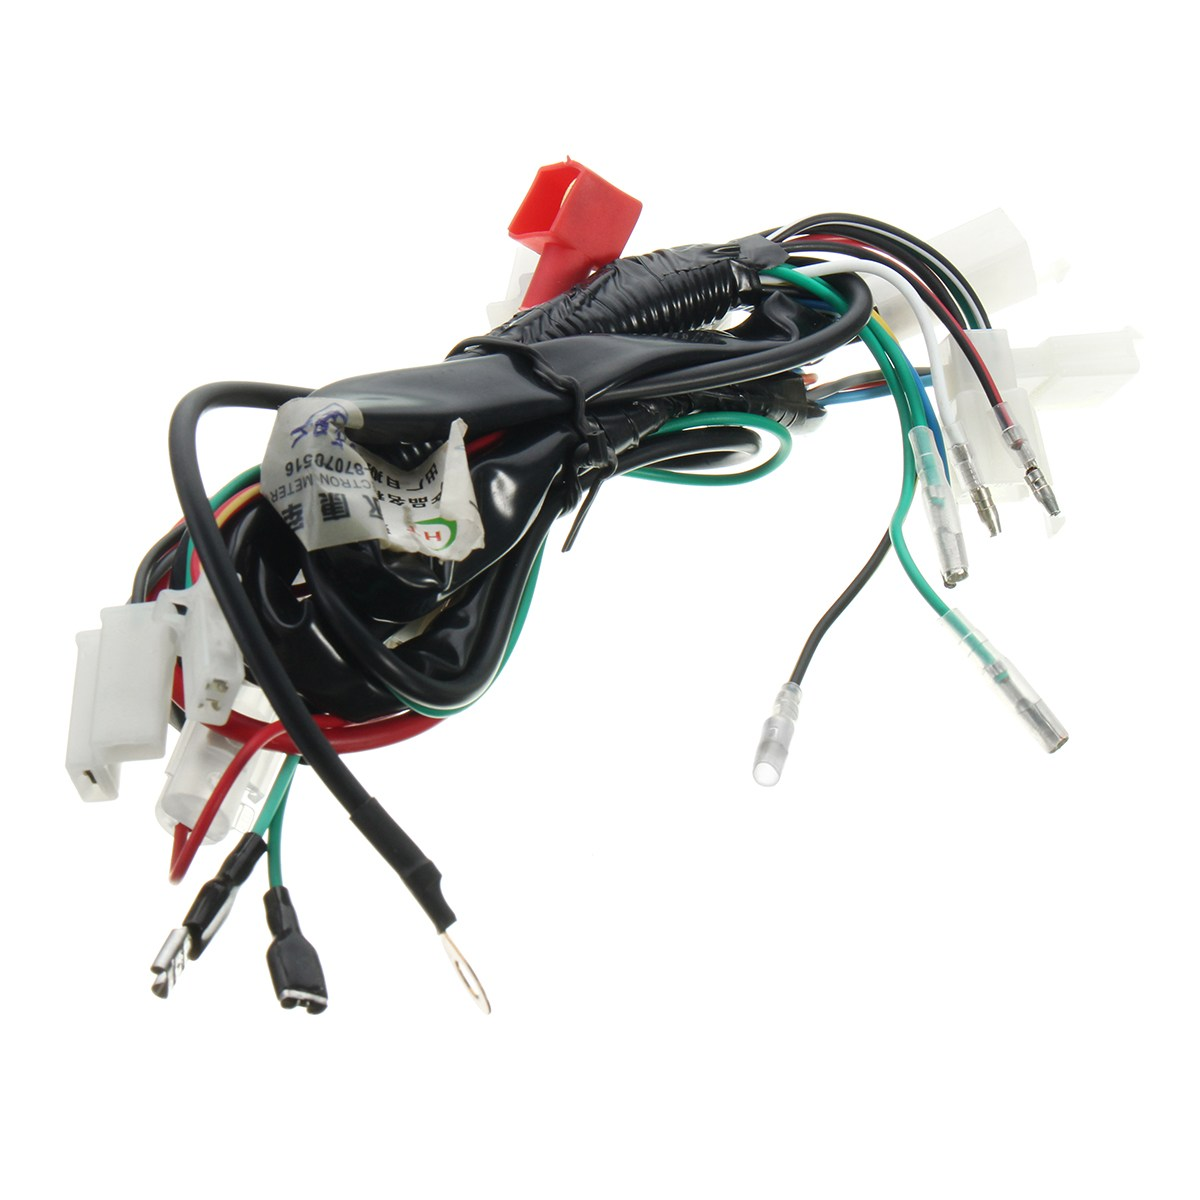 medium resolution of motorcycle wiring harness machine electric start wiring loom harness pit bike atv quads 50cc 70cc 90cc 110cc 125cc in motorbike ingition from automobiles